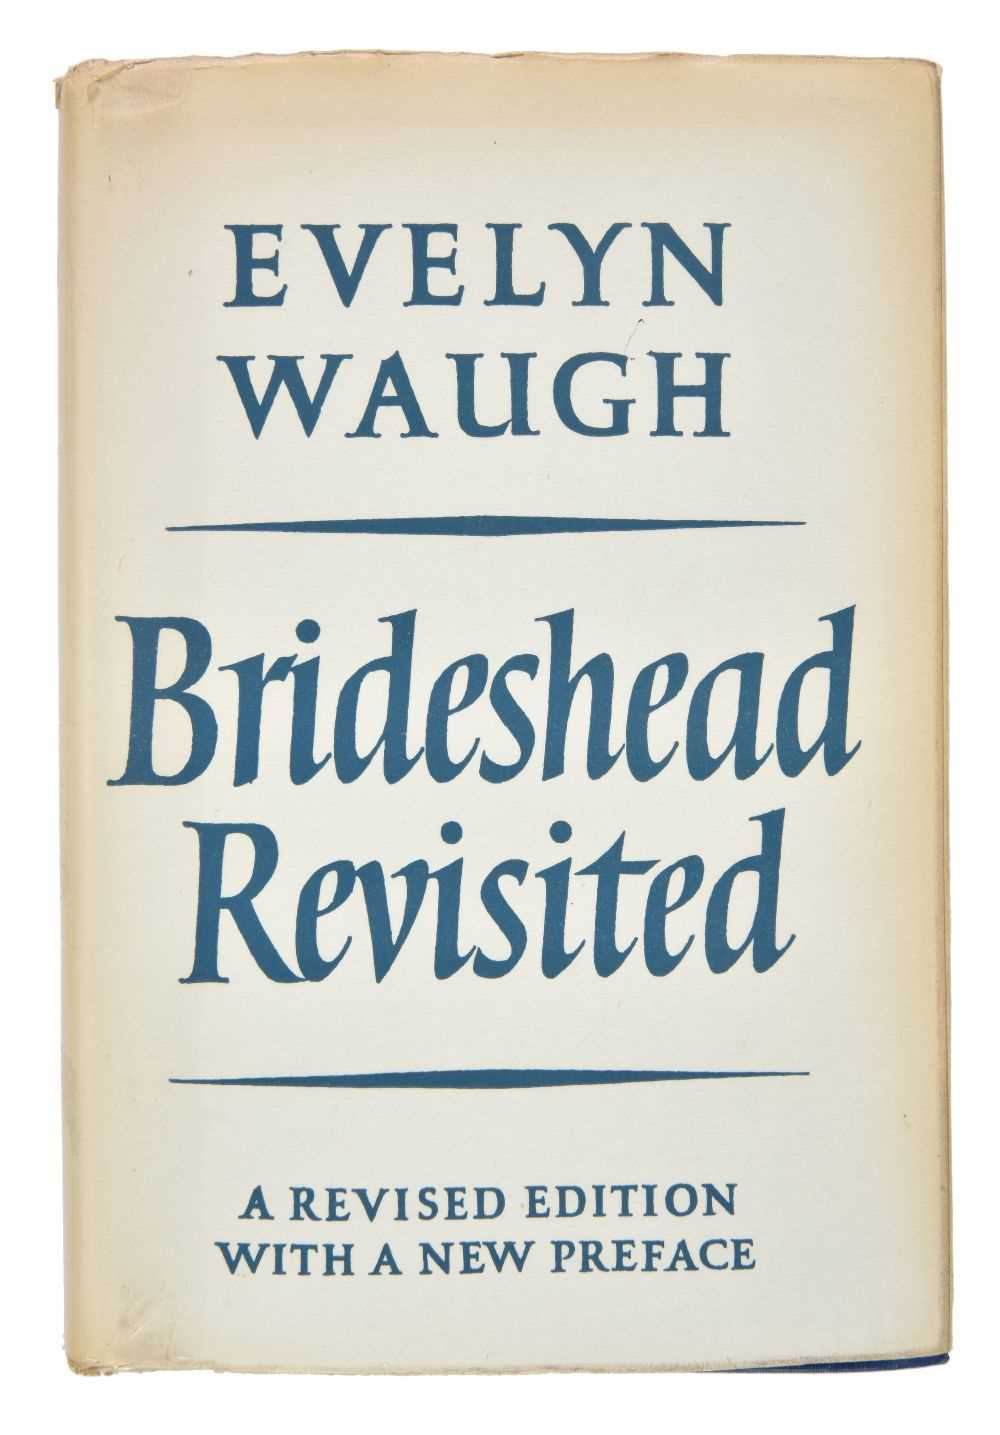 Lot 754-Waugh (Evelyn). Brideshead Revisited, revised edition with new preface, 1960, signed